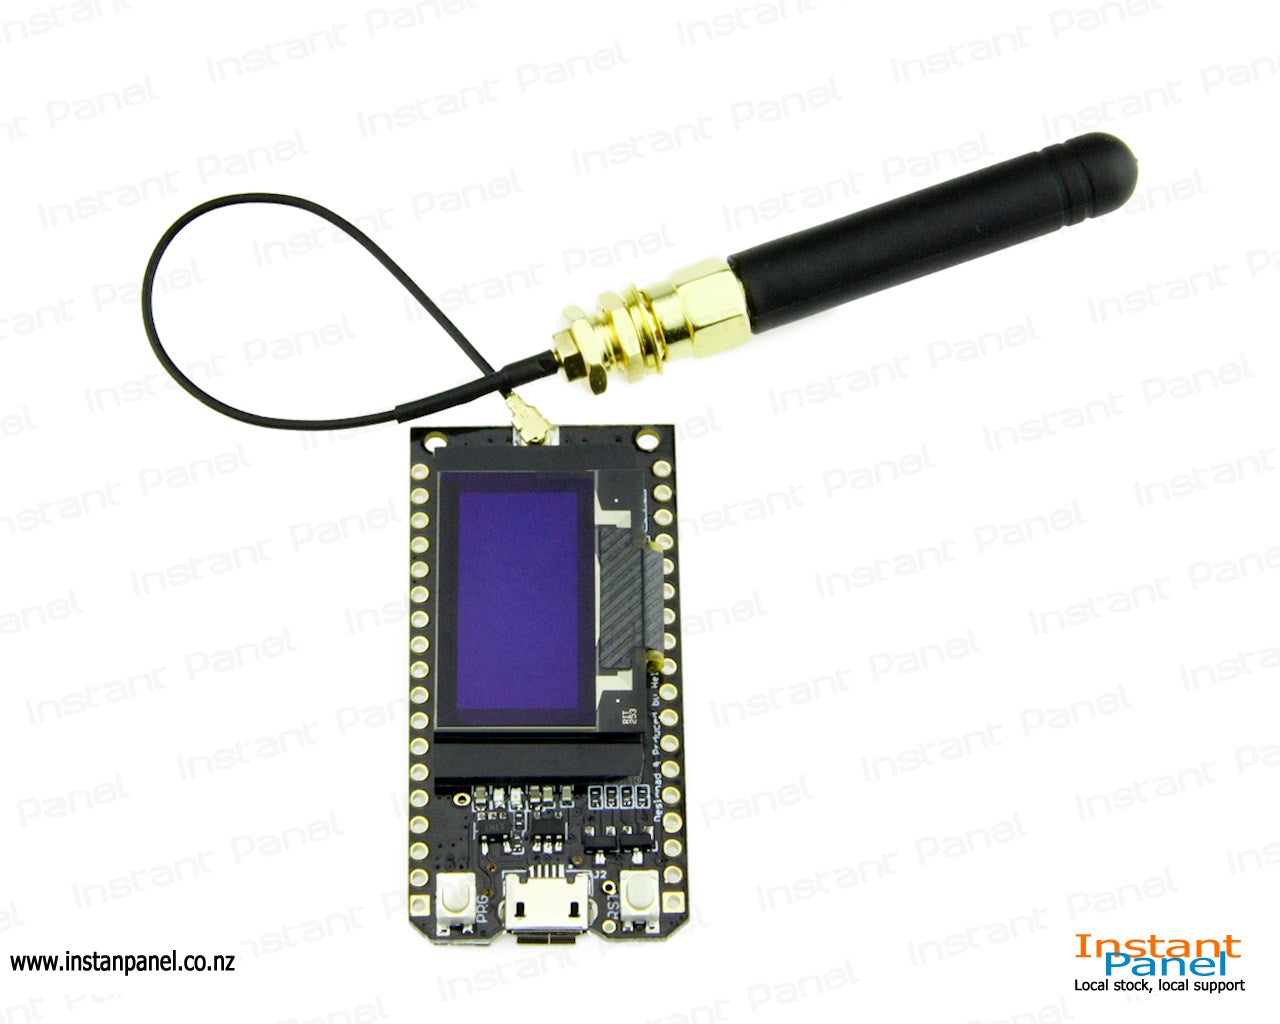 TTGO LORA32 0 96 OLED Display Module, Wifi Blutooth with Antenna